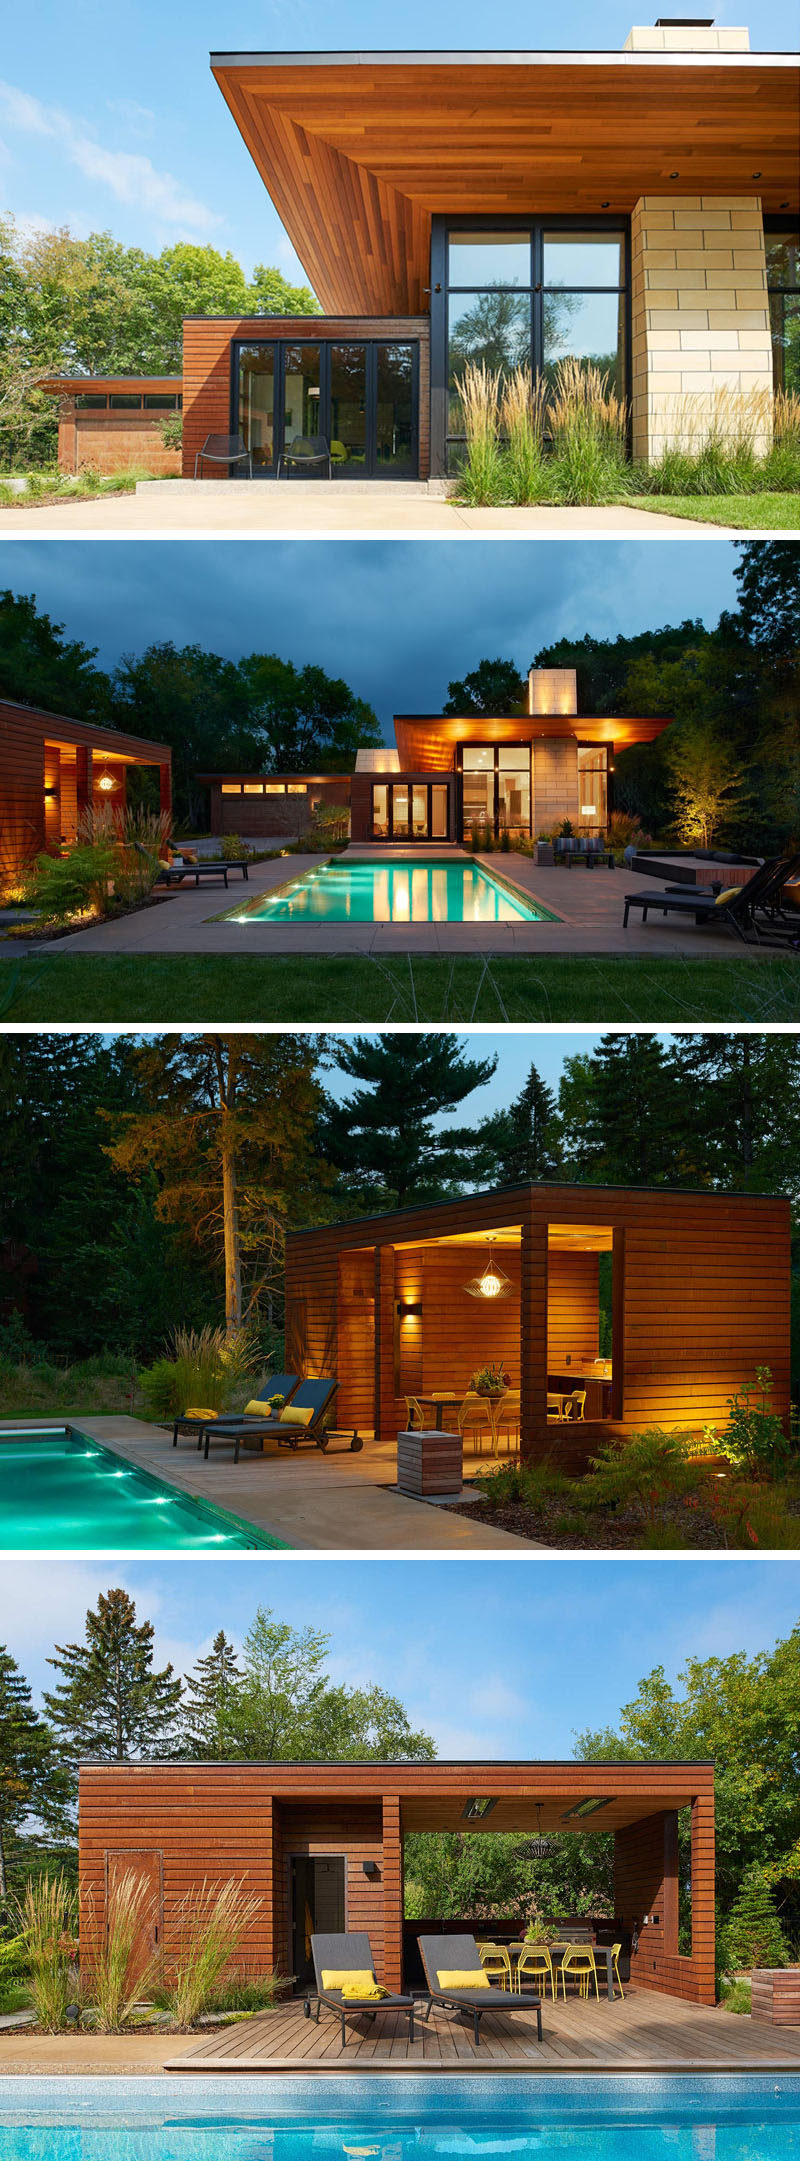 This modern ranch house has an outdoor space with a swimming pool, deck and cabana with an outdoor kitchen and dining area. Looking back at the house, the cantilevered roof plane shields the living spaces from the summer sun. #SwimmingPool #Cabana #ModernArchitecture